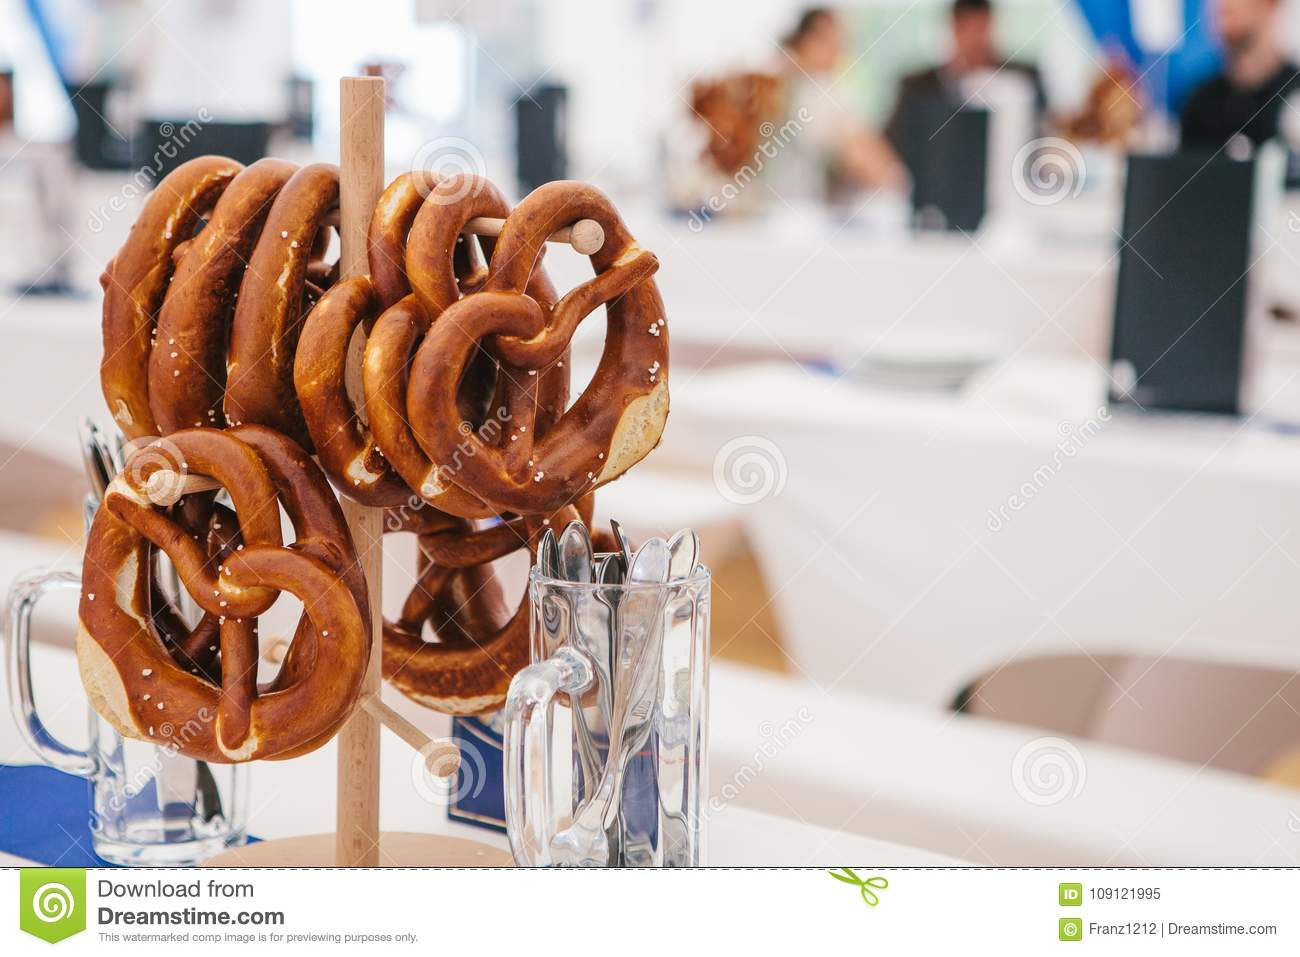 Celebration of the famous German beer festival Oktoberfest. Traditional pretzels called Brezel hang on the stand on the